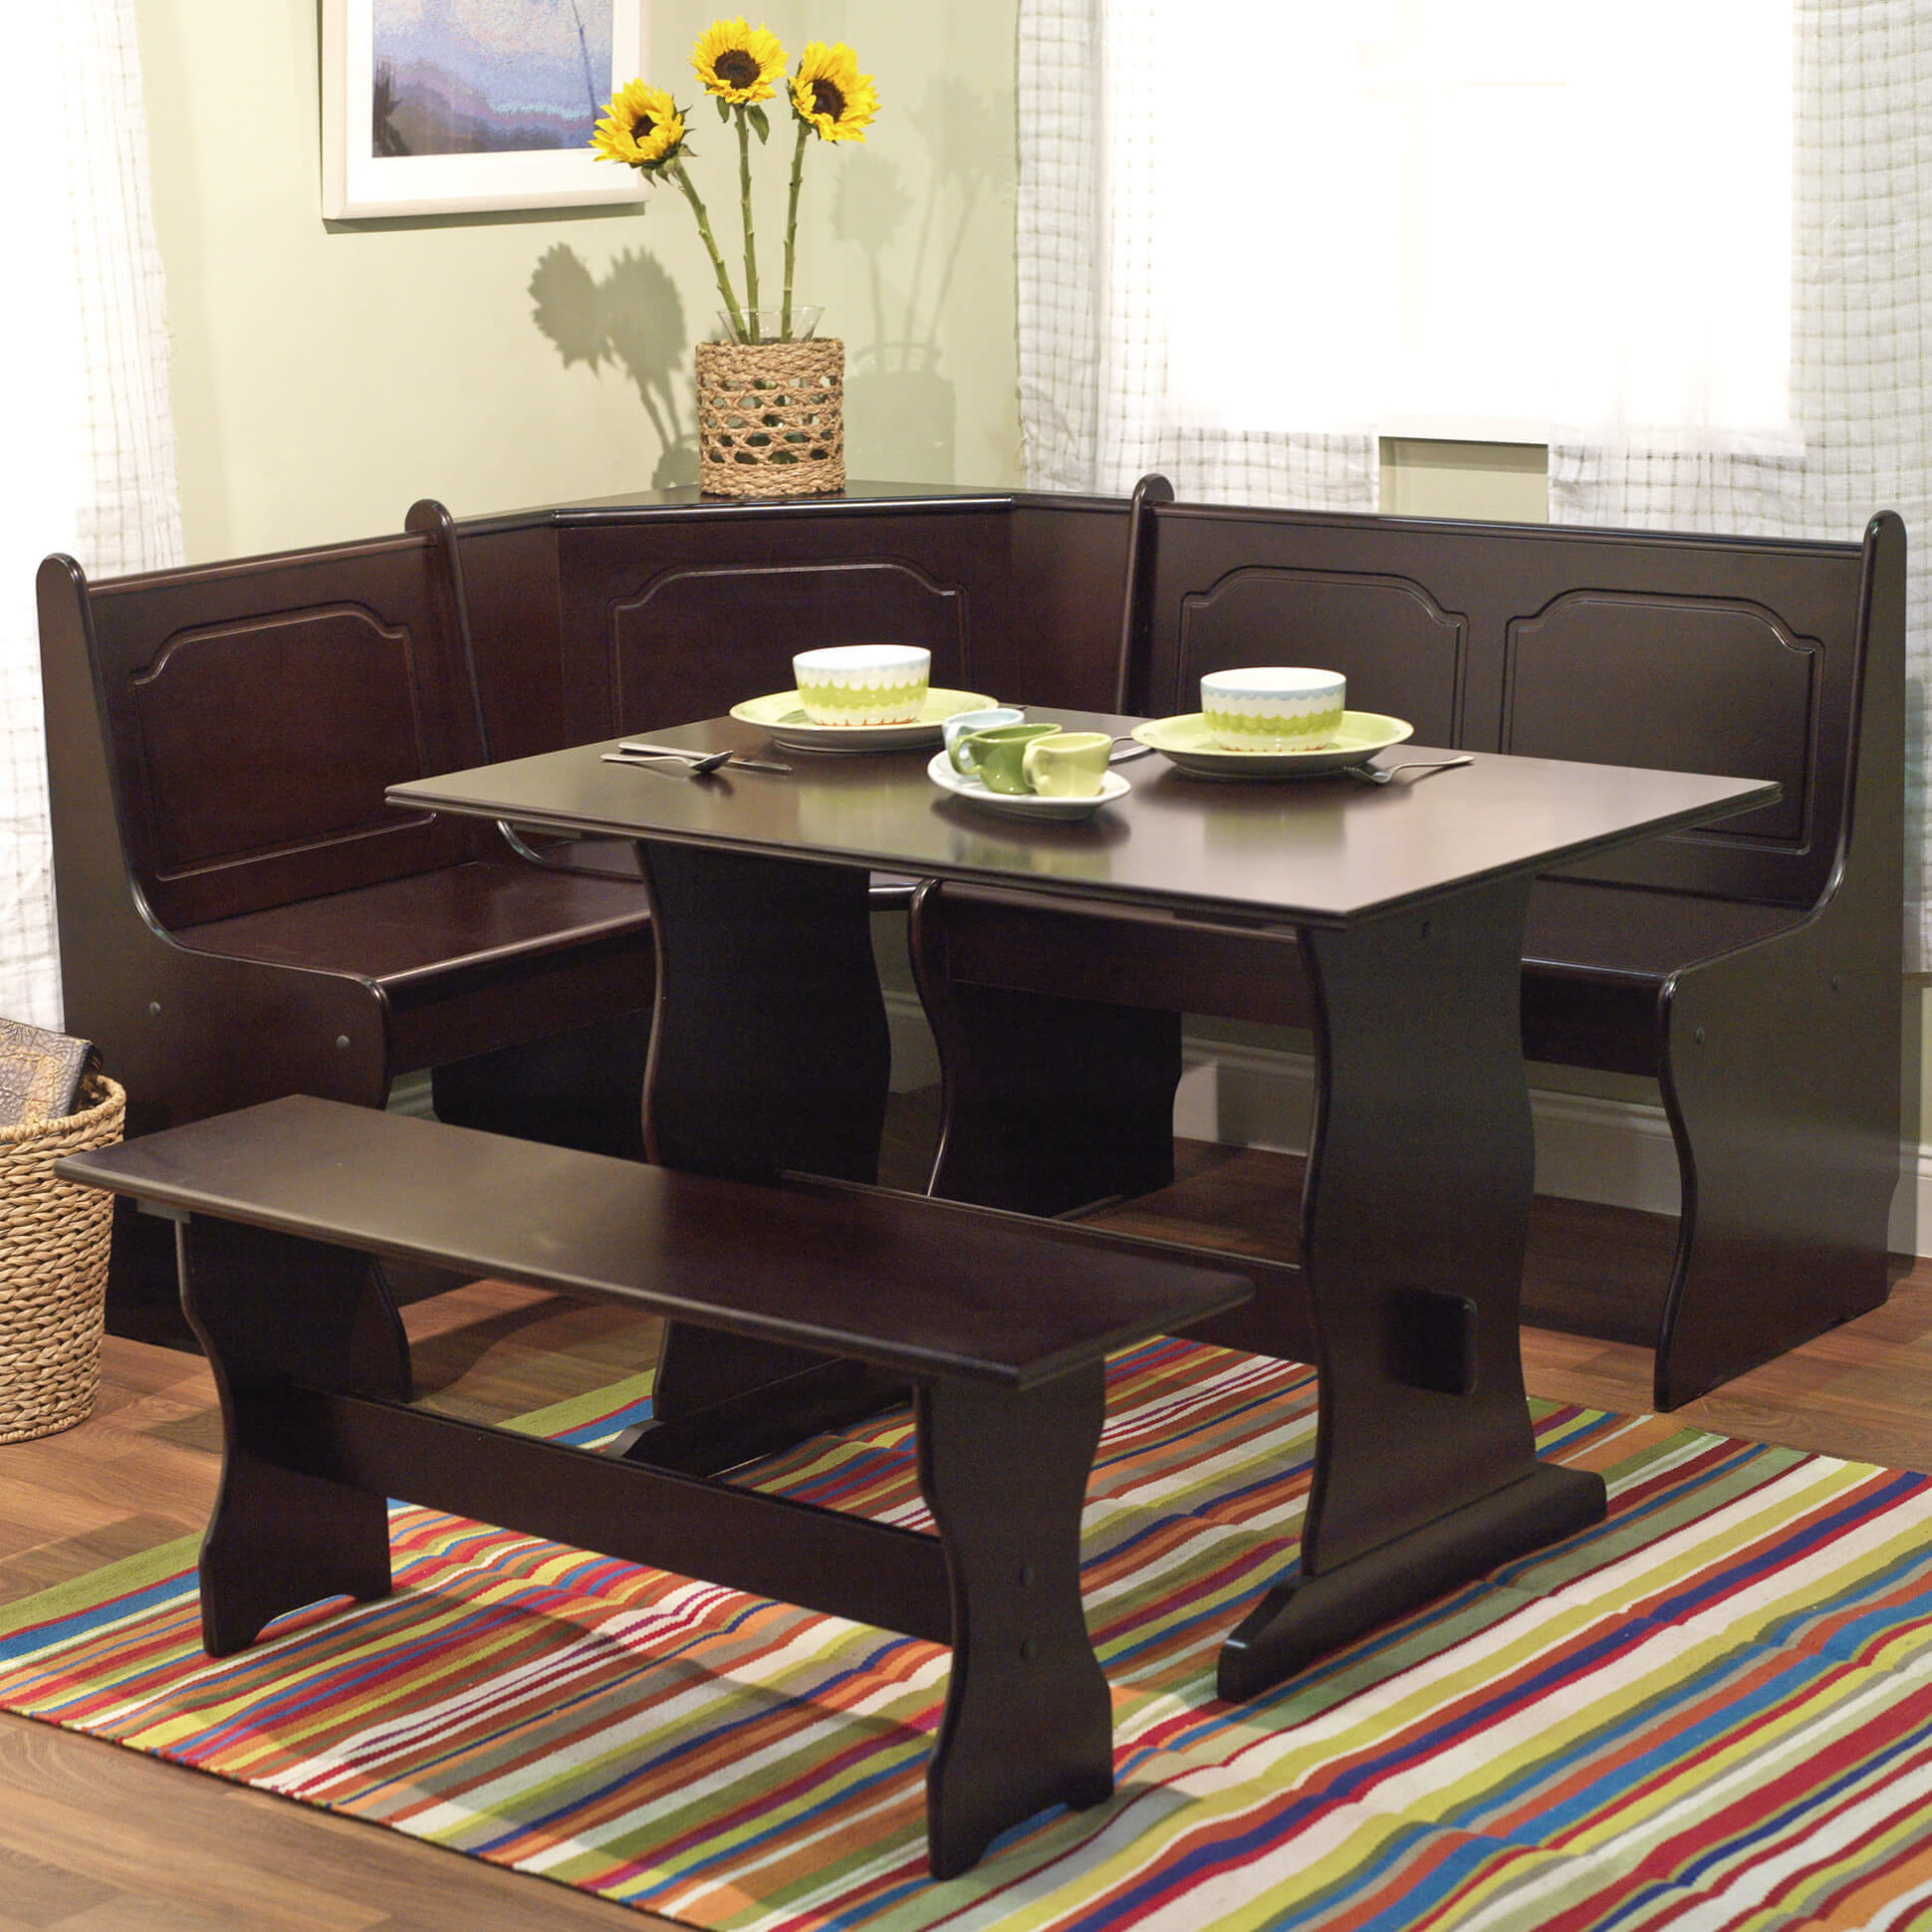 Dinette Bench Seating: 21 Space-Saving Corner Breakfast Nook Furniture Sets (BOOTHS